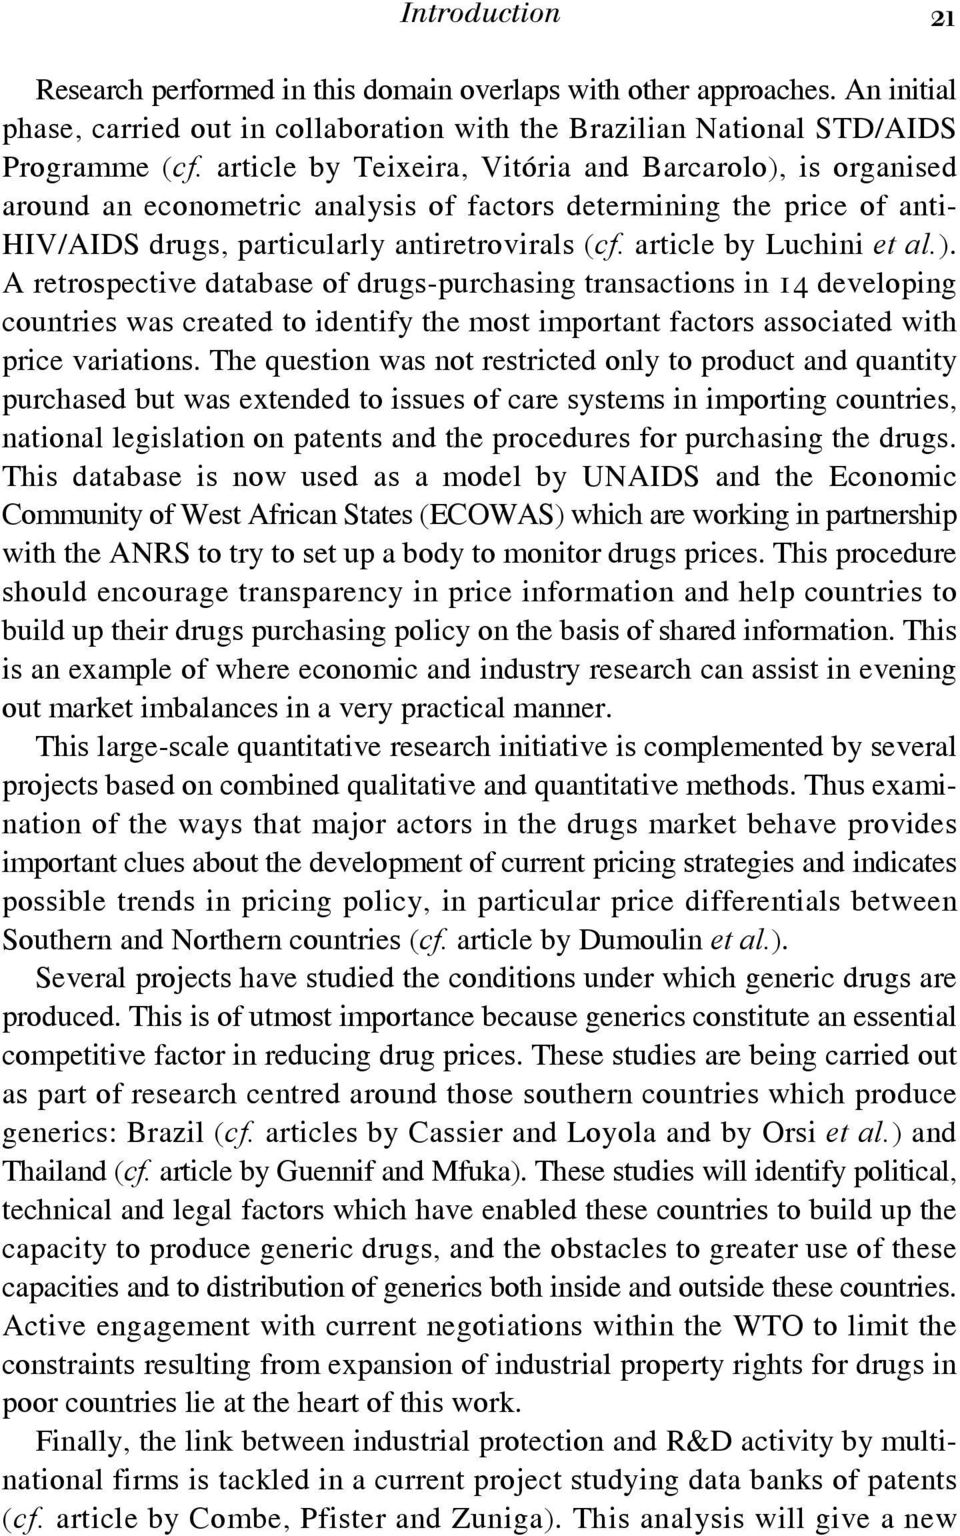 the political economy of hiv aids in developing countries coriat benjamin